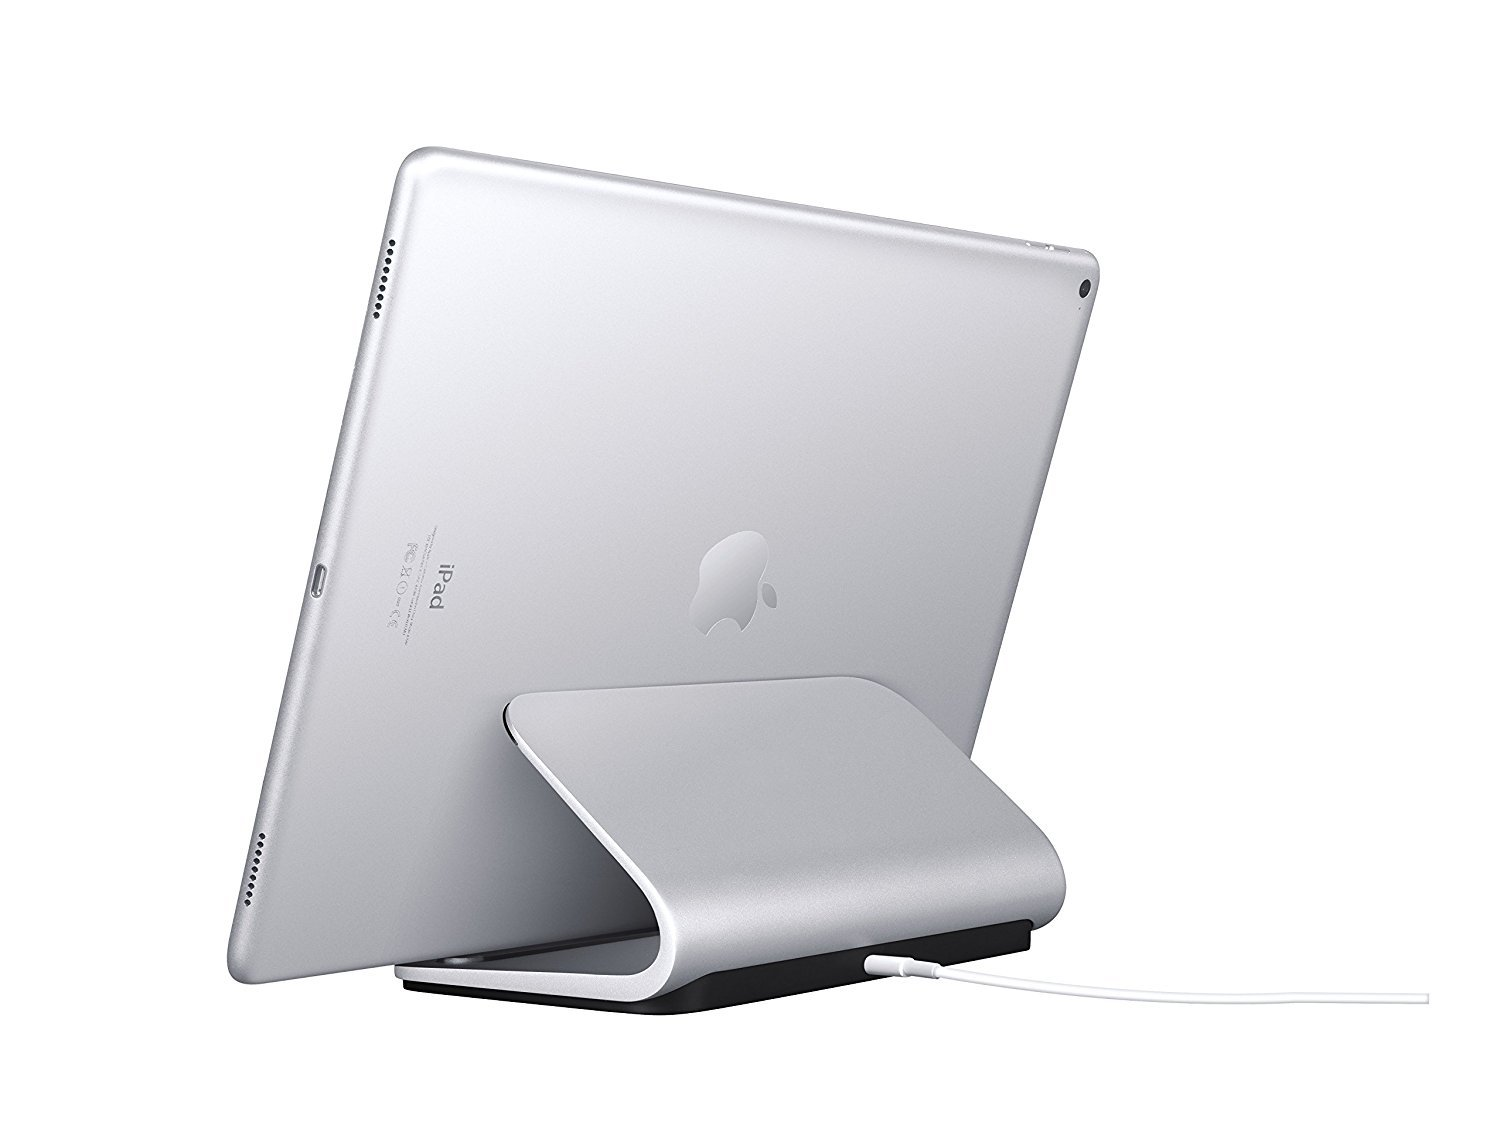 Logitech Base Charging Stand - For Pad Pro 9.7-inch,10.5-inch, 12.9-inch (1st and 2nd gen) - Premium Aluminum Construction - Smart Connector Technology by Logitech